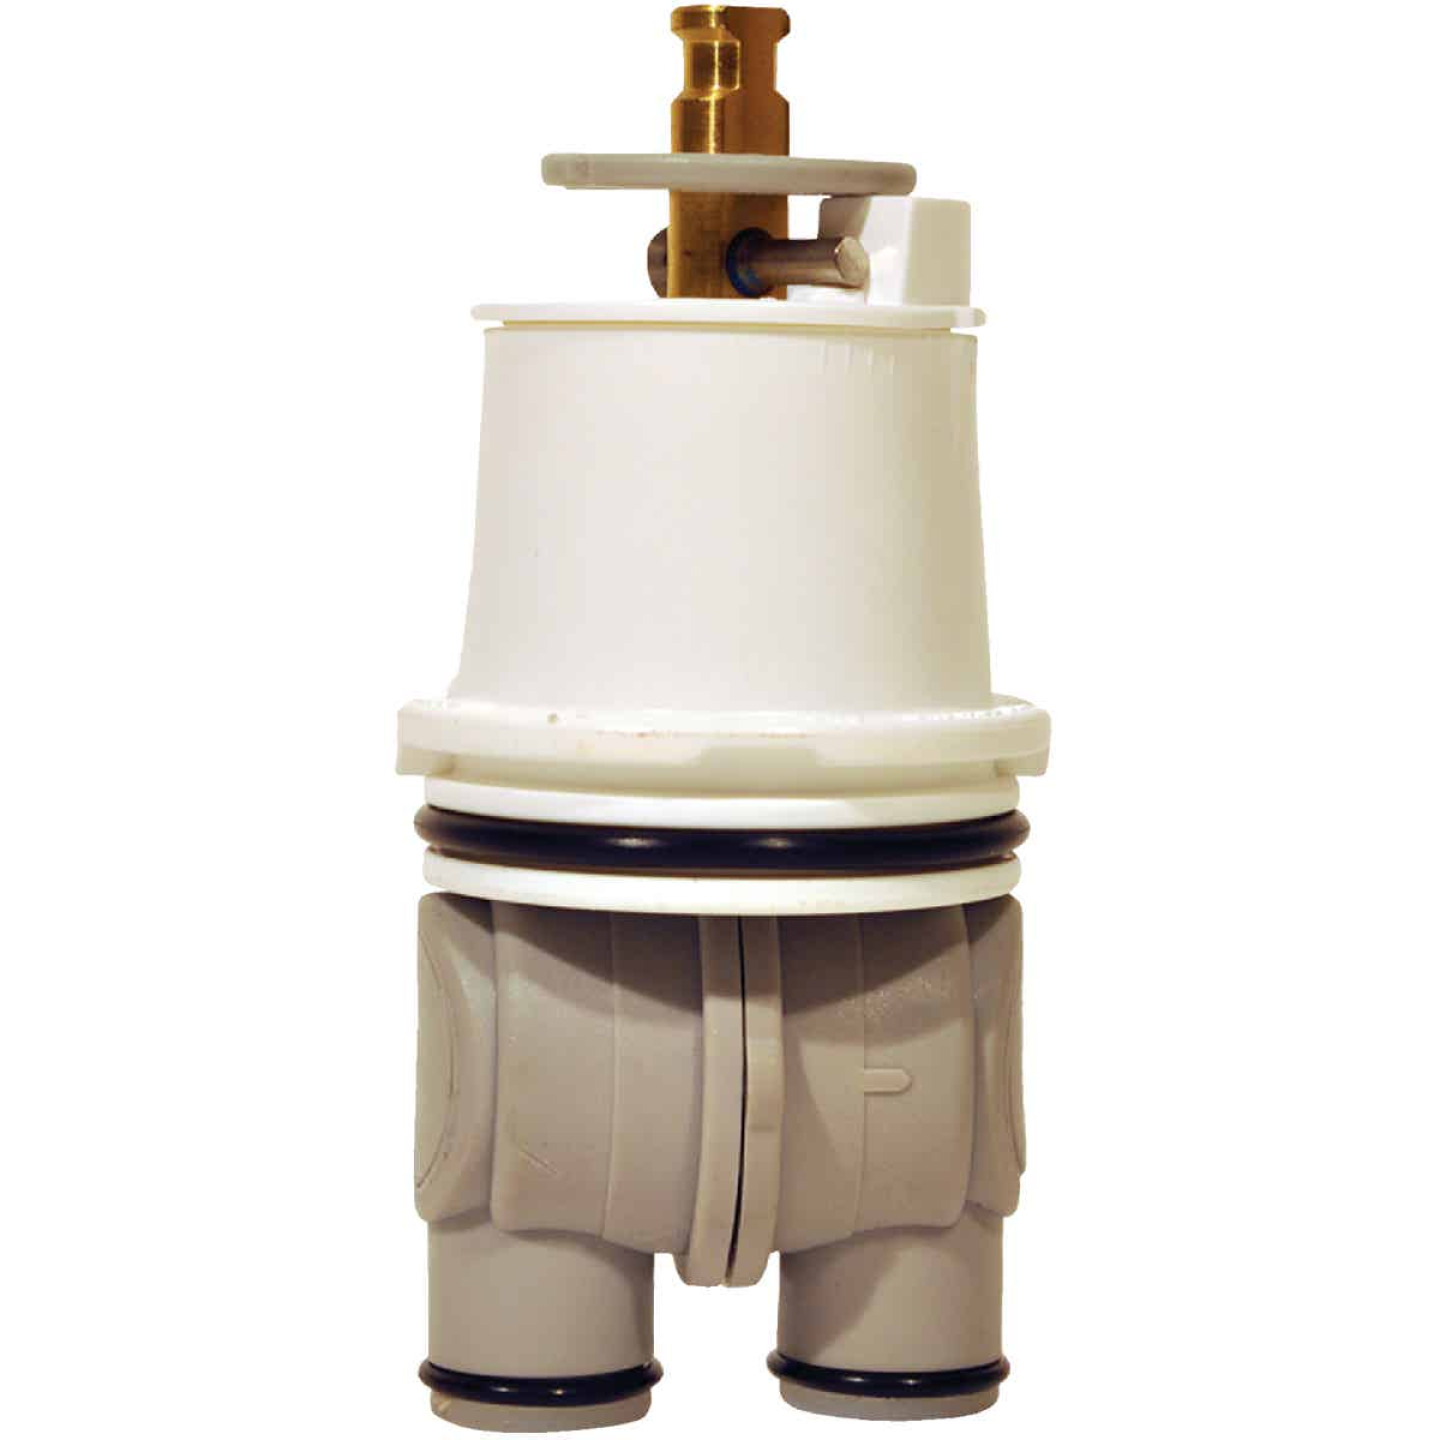 Delta Faucet Cartridge for Monitor Image 1